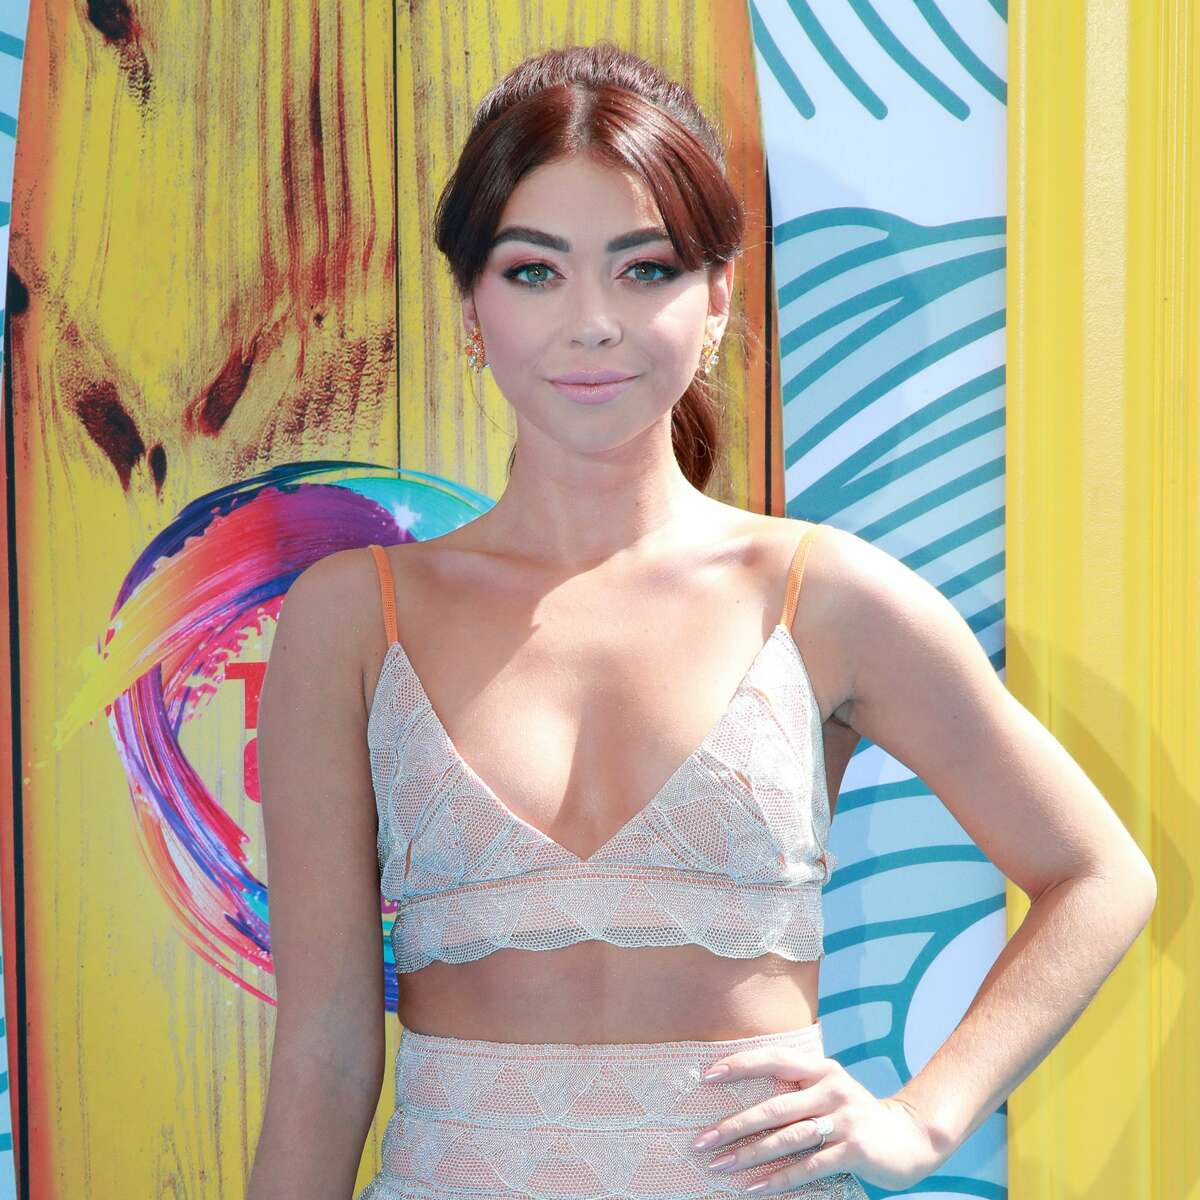 HERMOSA BEACH, CALIFORNIA - AUGUST 11: Sarah Hyland attends FOX's Teen Choice Awards 2019 on August 11, 2019 in Hermosa Beach, California.